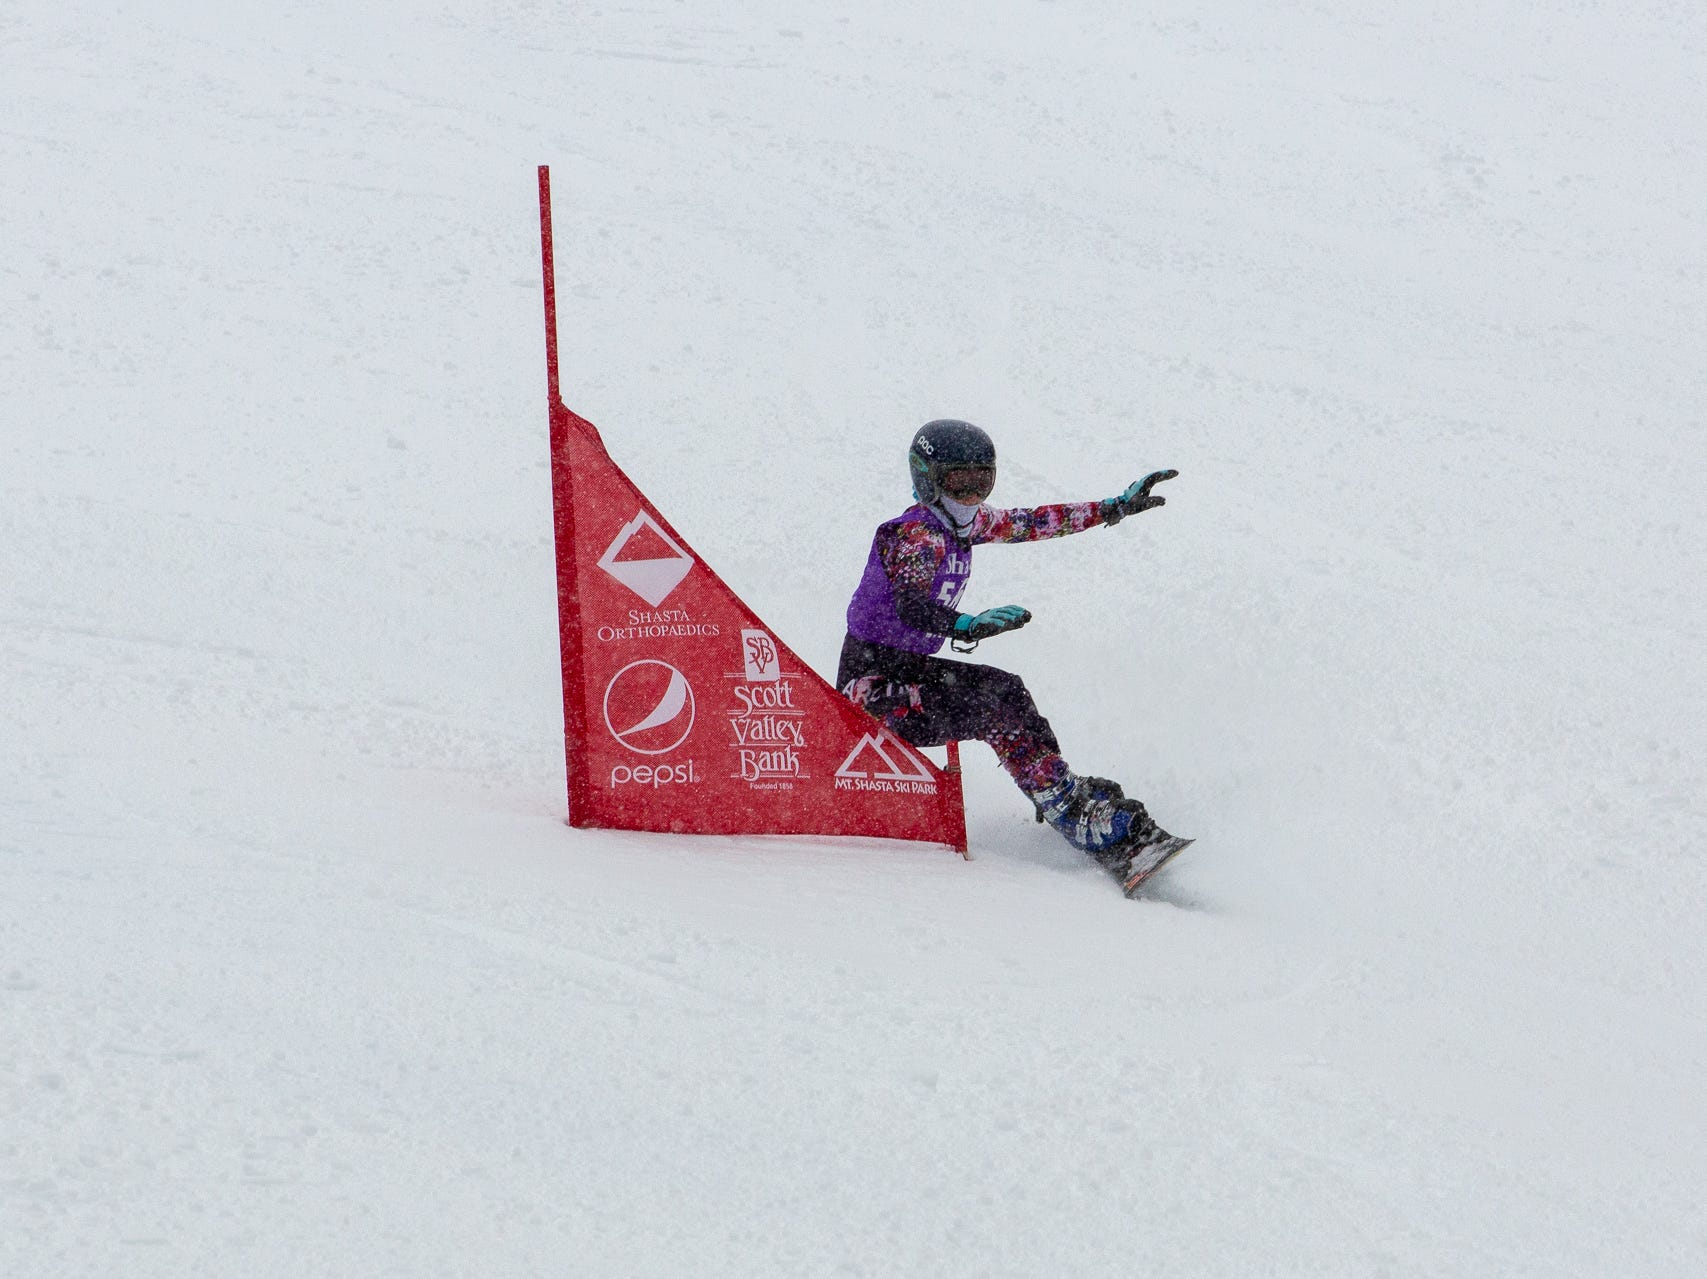 Sage Will of Shasta High competes in the girls slalom at the 2019 snowboard state championships held March 4-5 at Mt. Shasta Ski Park.